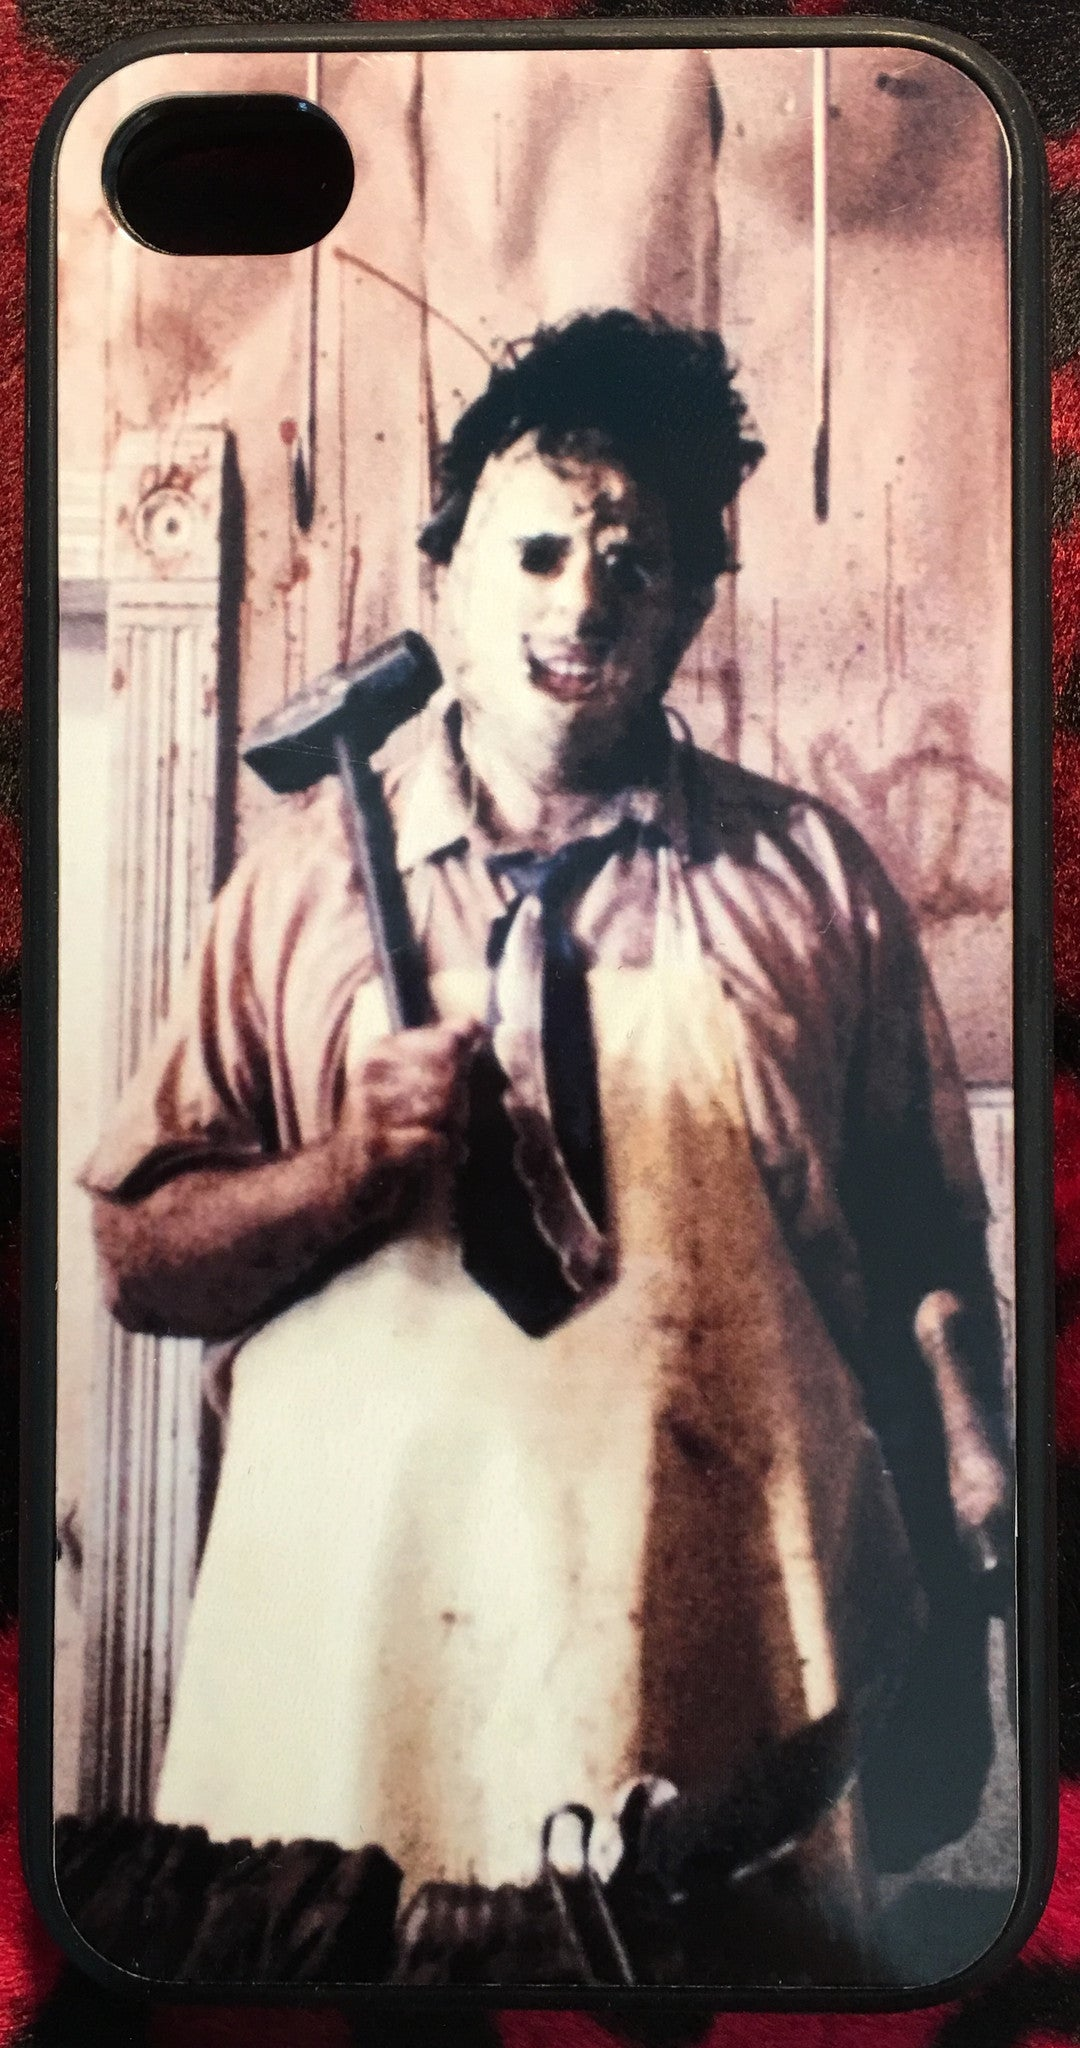 Texas Chainsaw Massacre Leatherface iPhone 4/4S Case